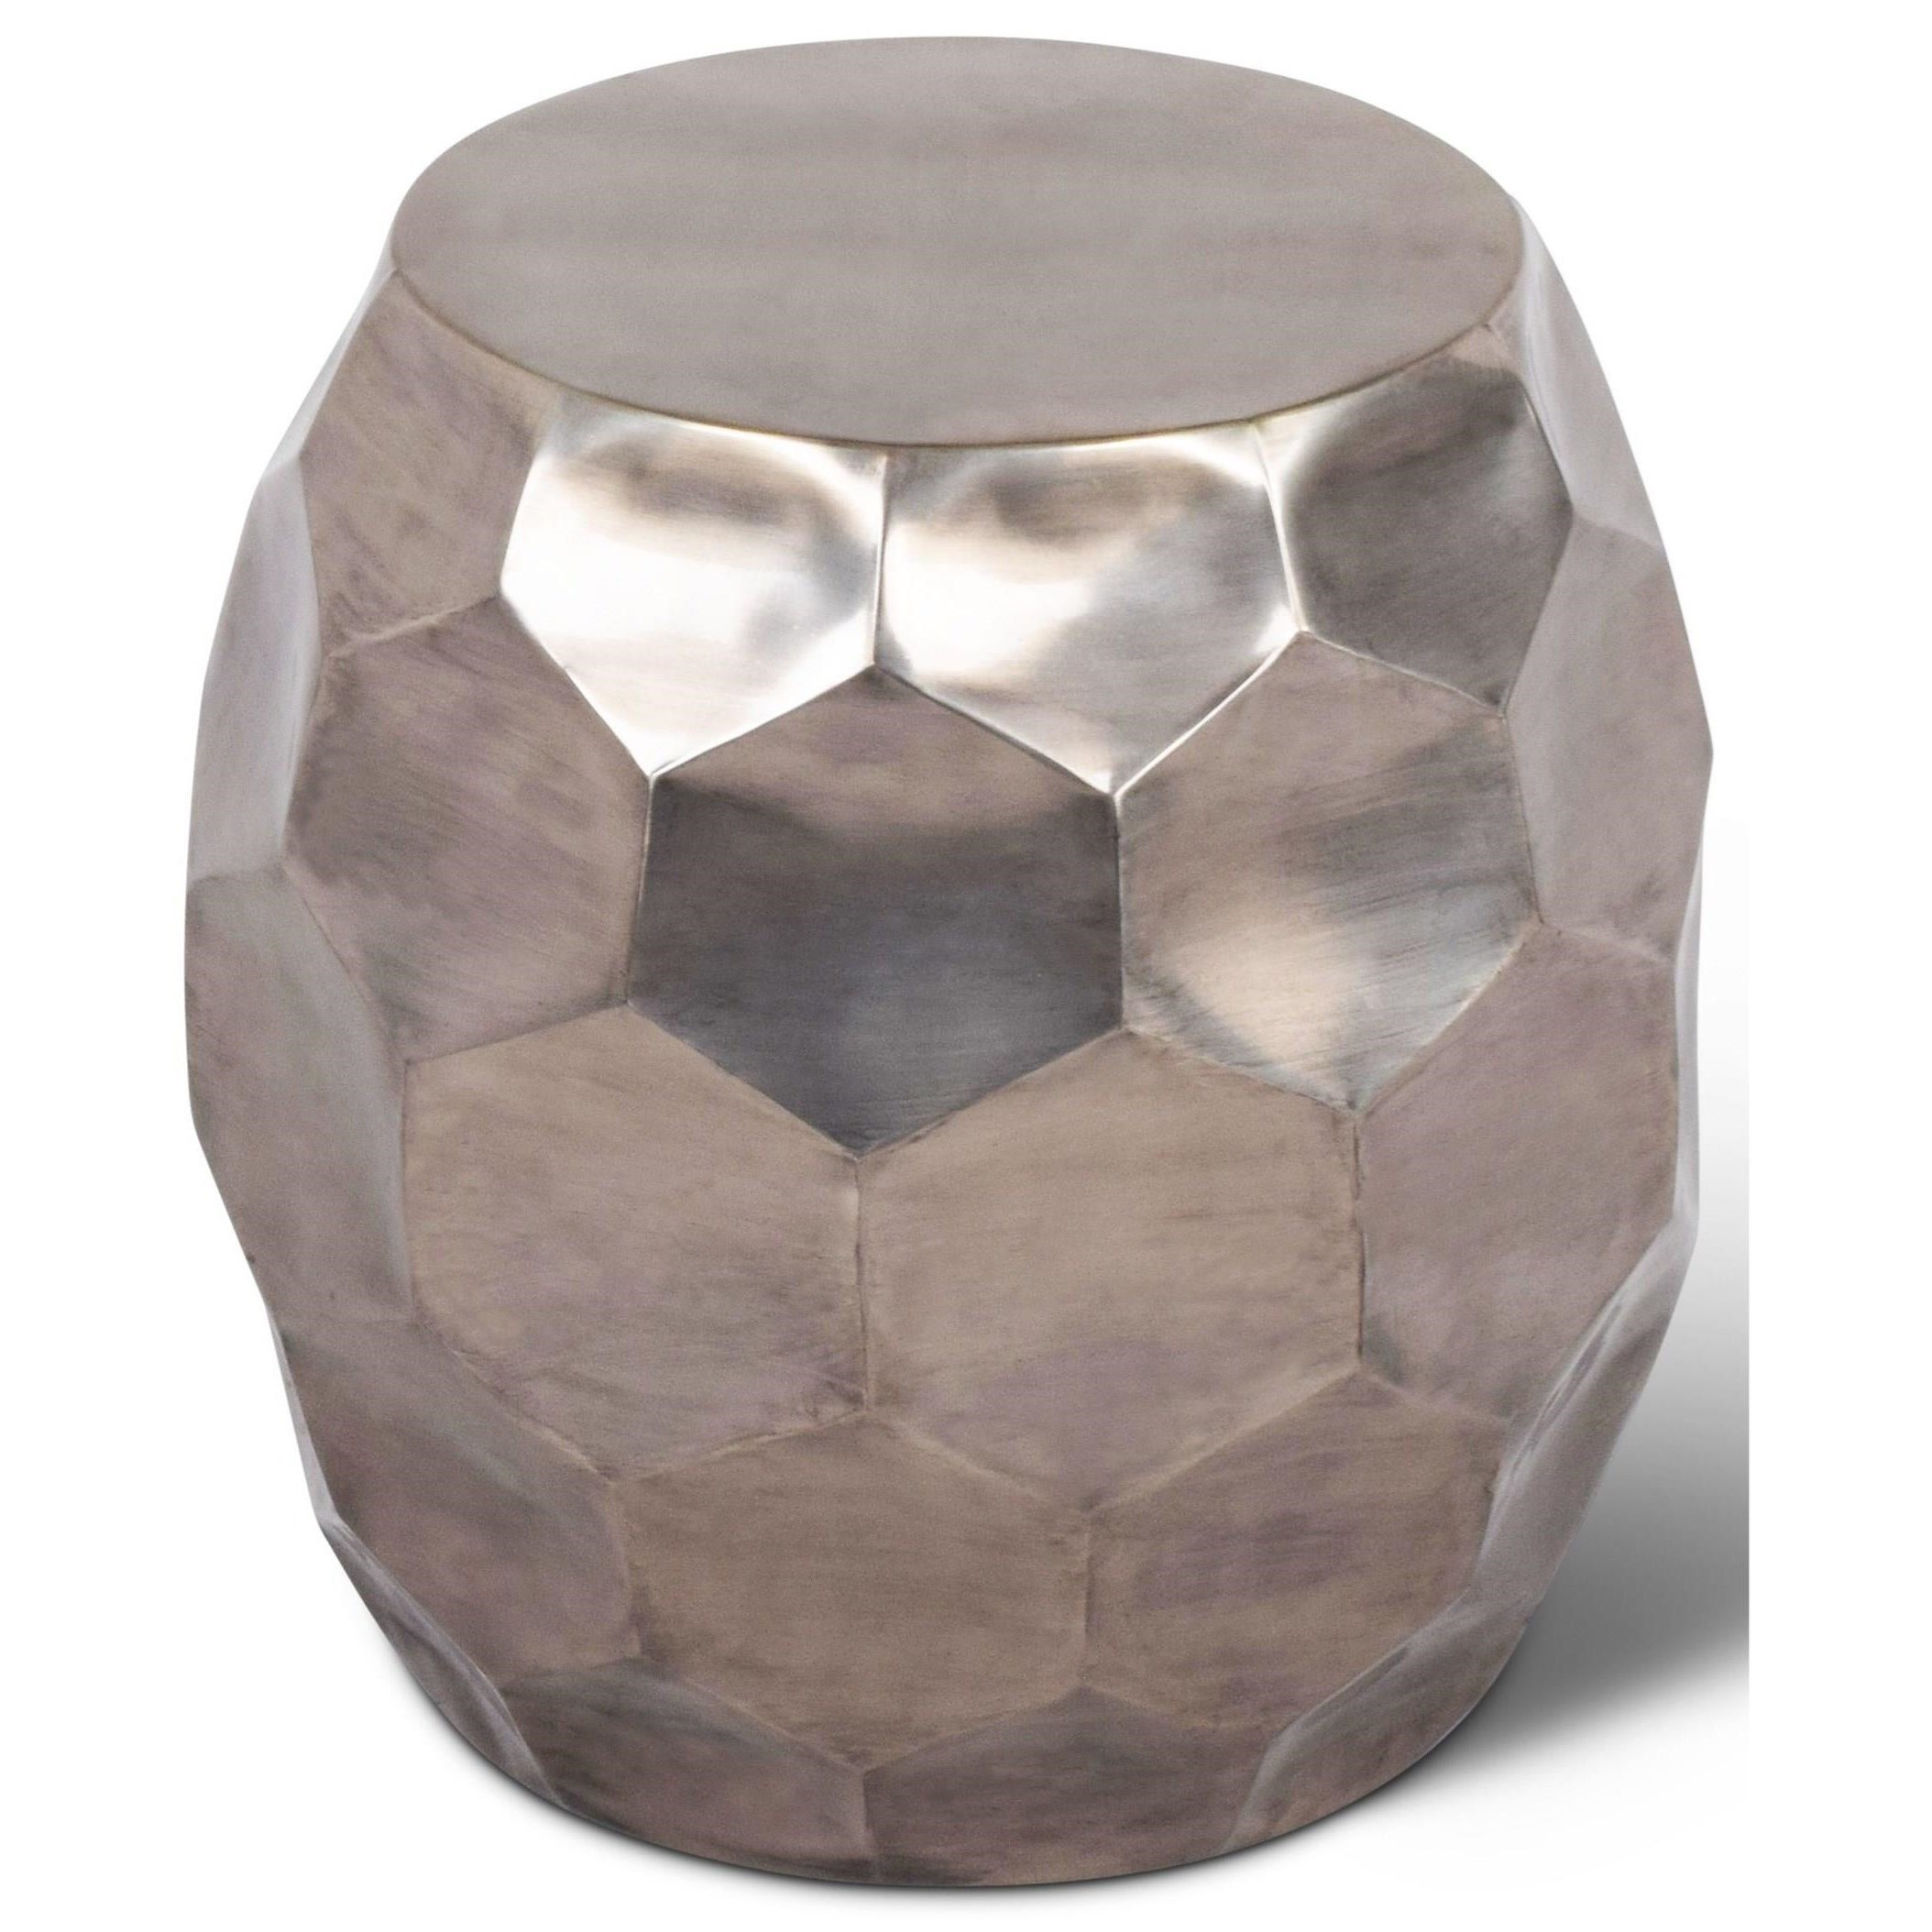 India Accents Stomp Round End Table by Steve Silver at Walker's Furniture